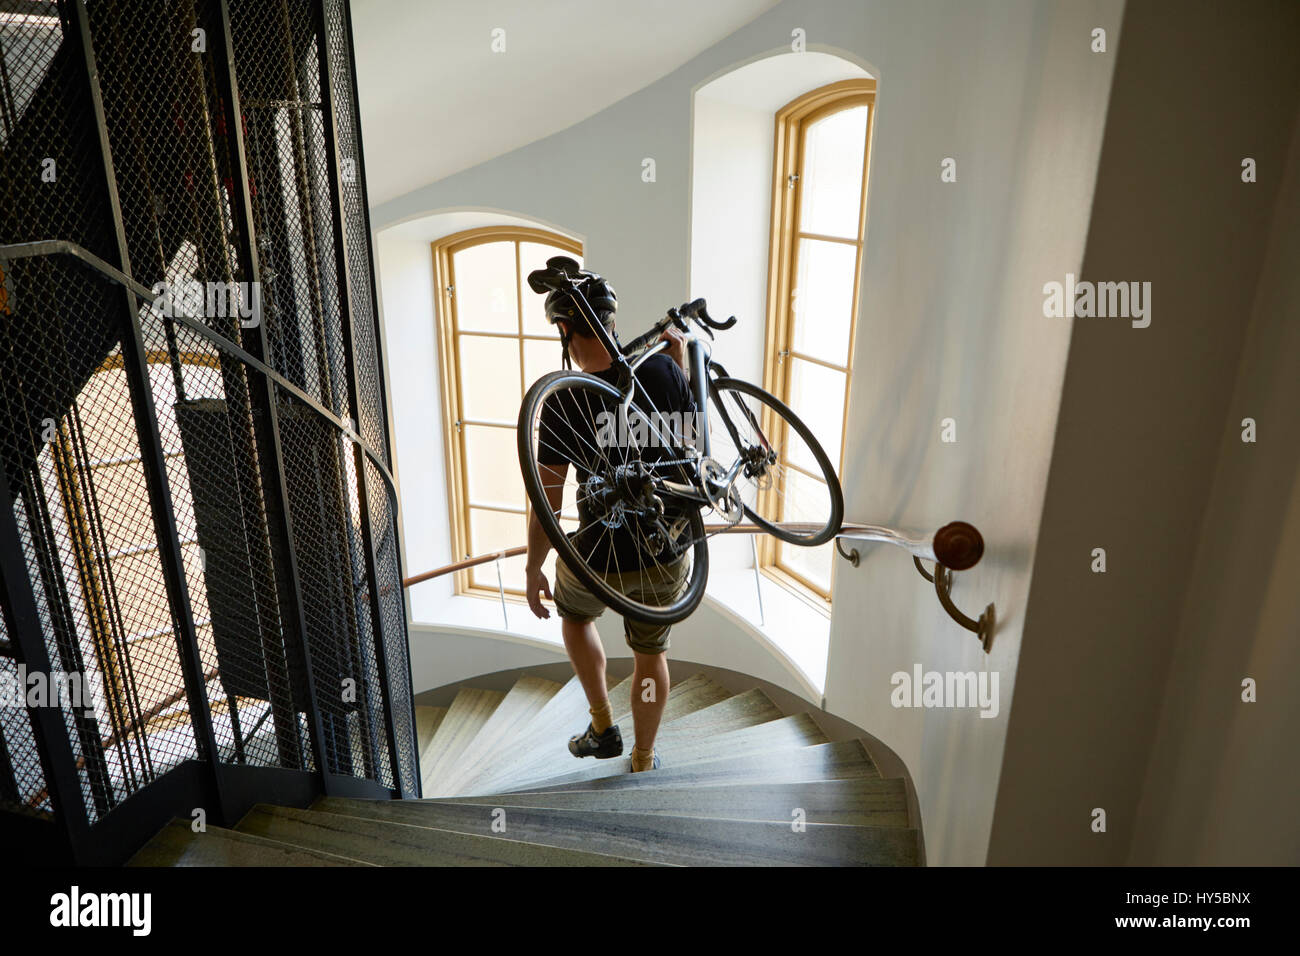 Sweden, Cyclist carrying bicycle on steps - Stock Image